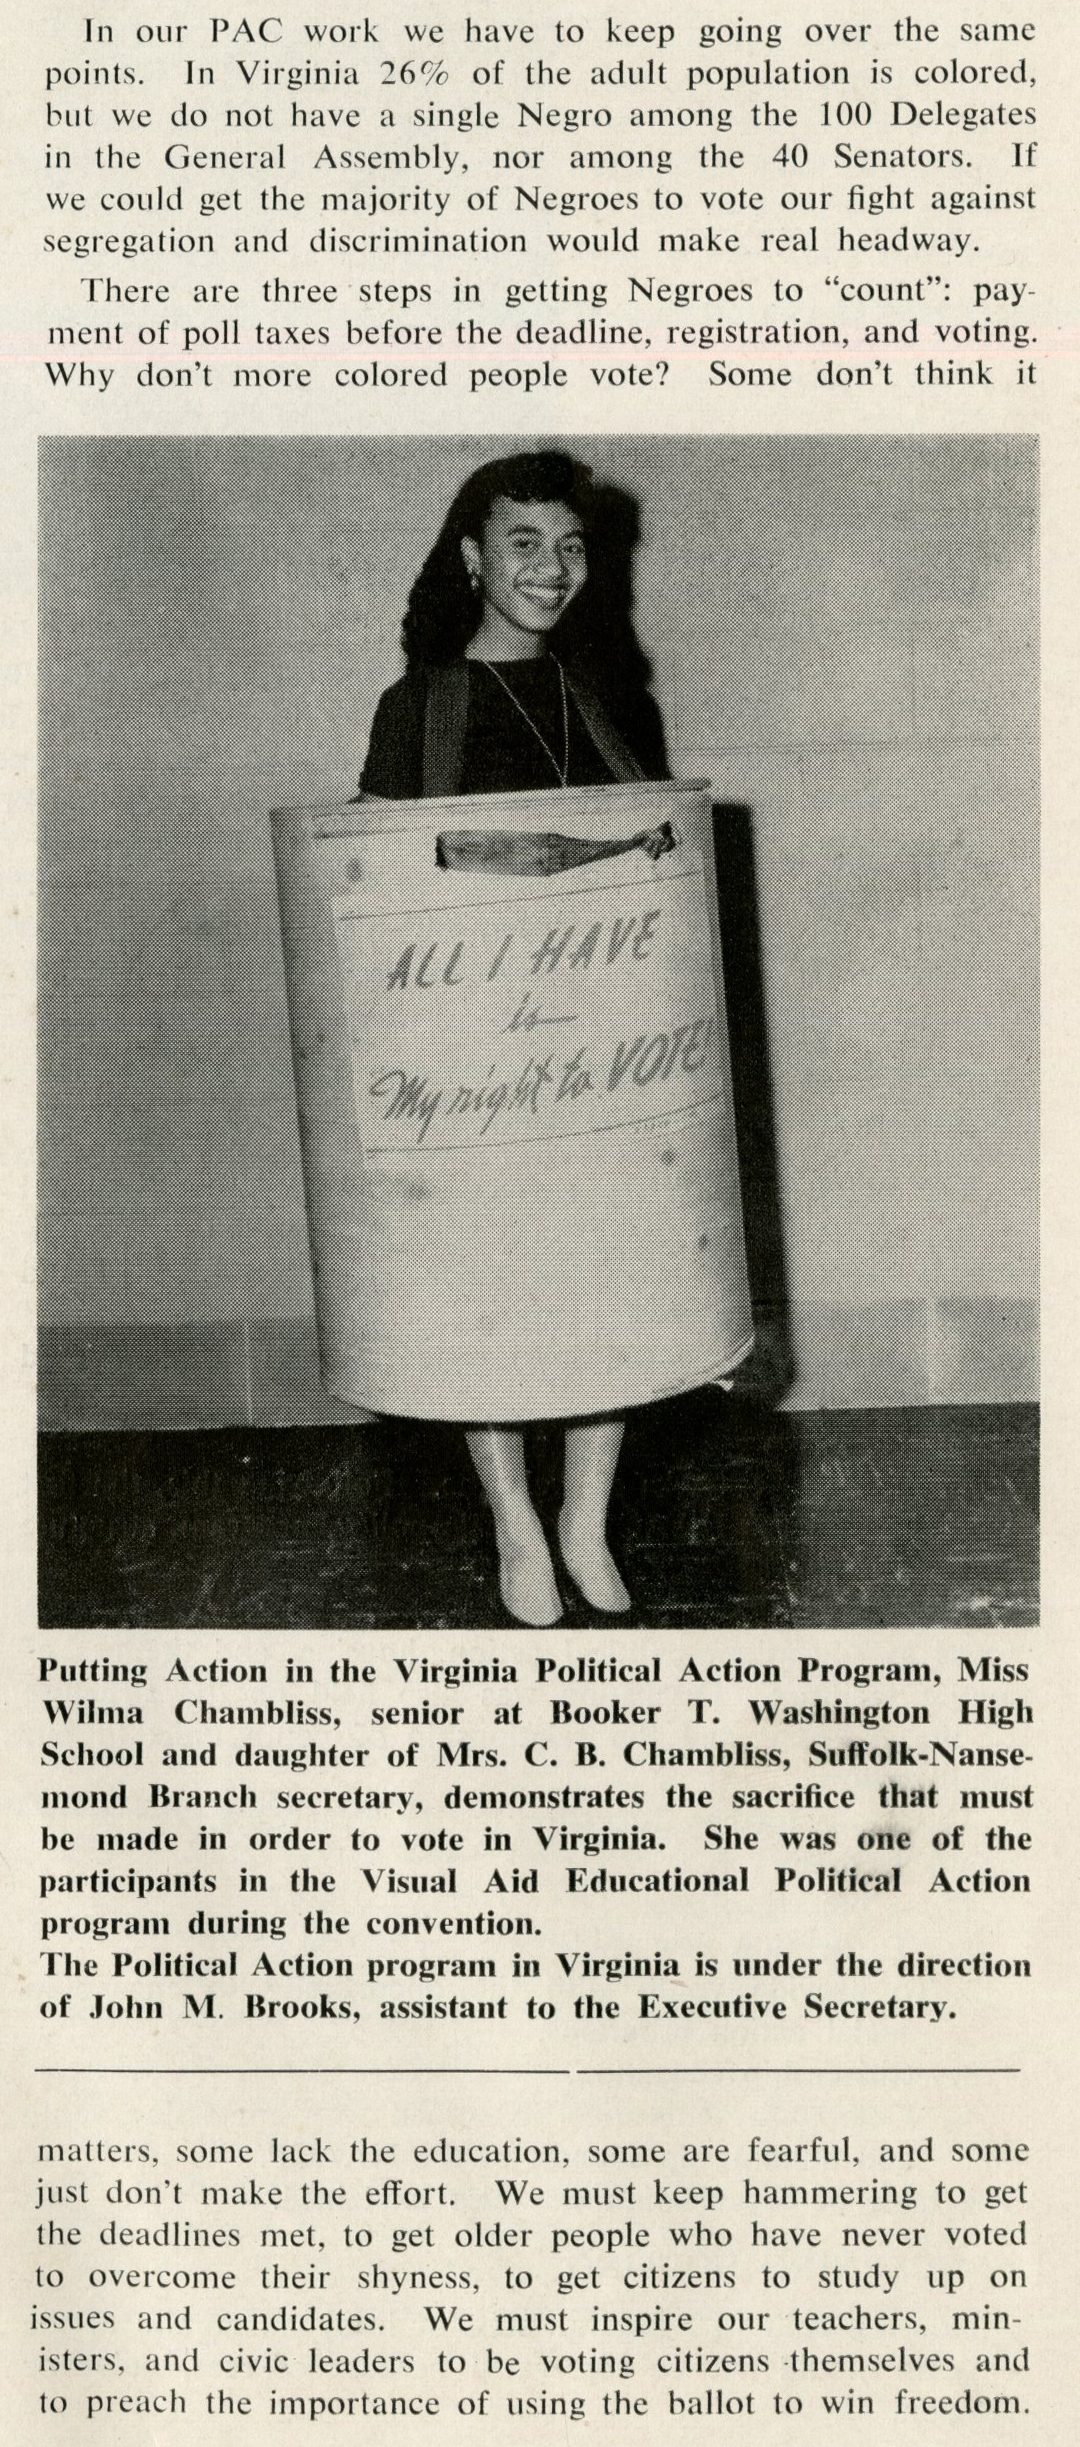 VCU_M296 Box 2 fVirginia The Candle December 1957 Wilma Chambliss tax register vote p2 rsz.jpg